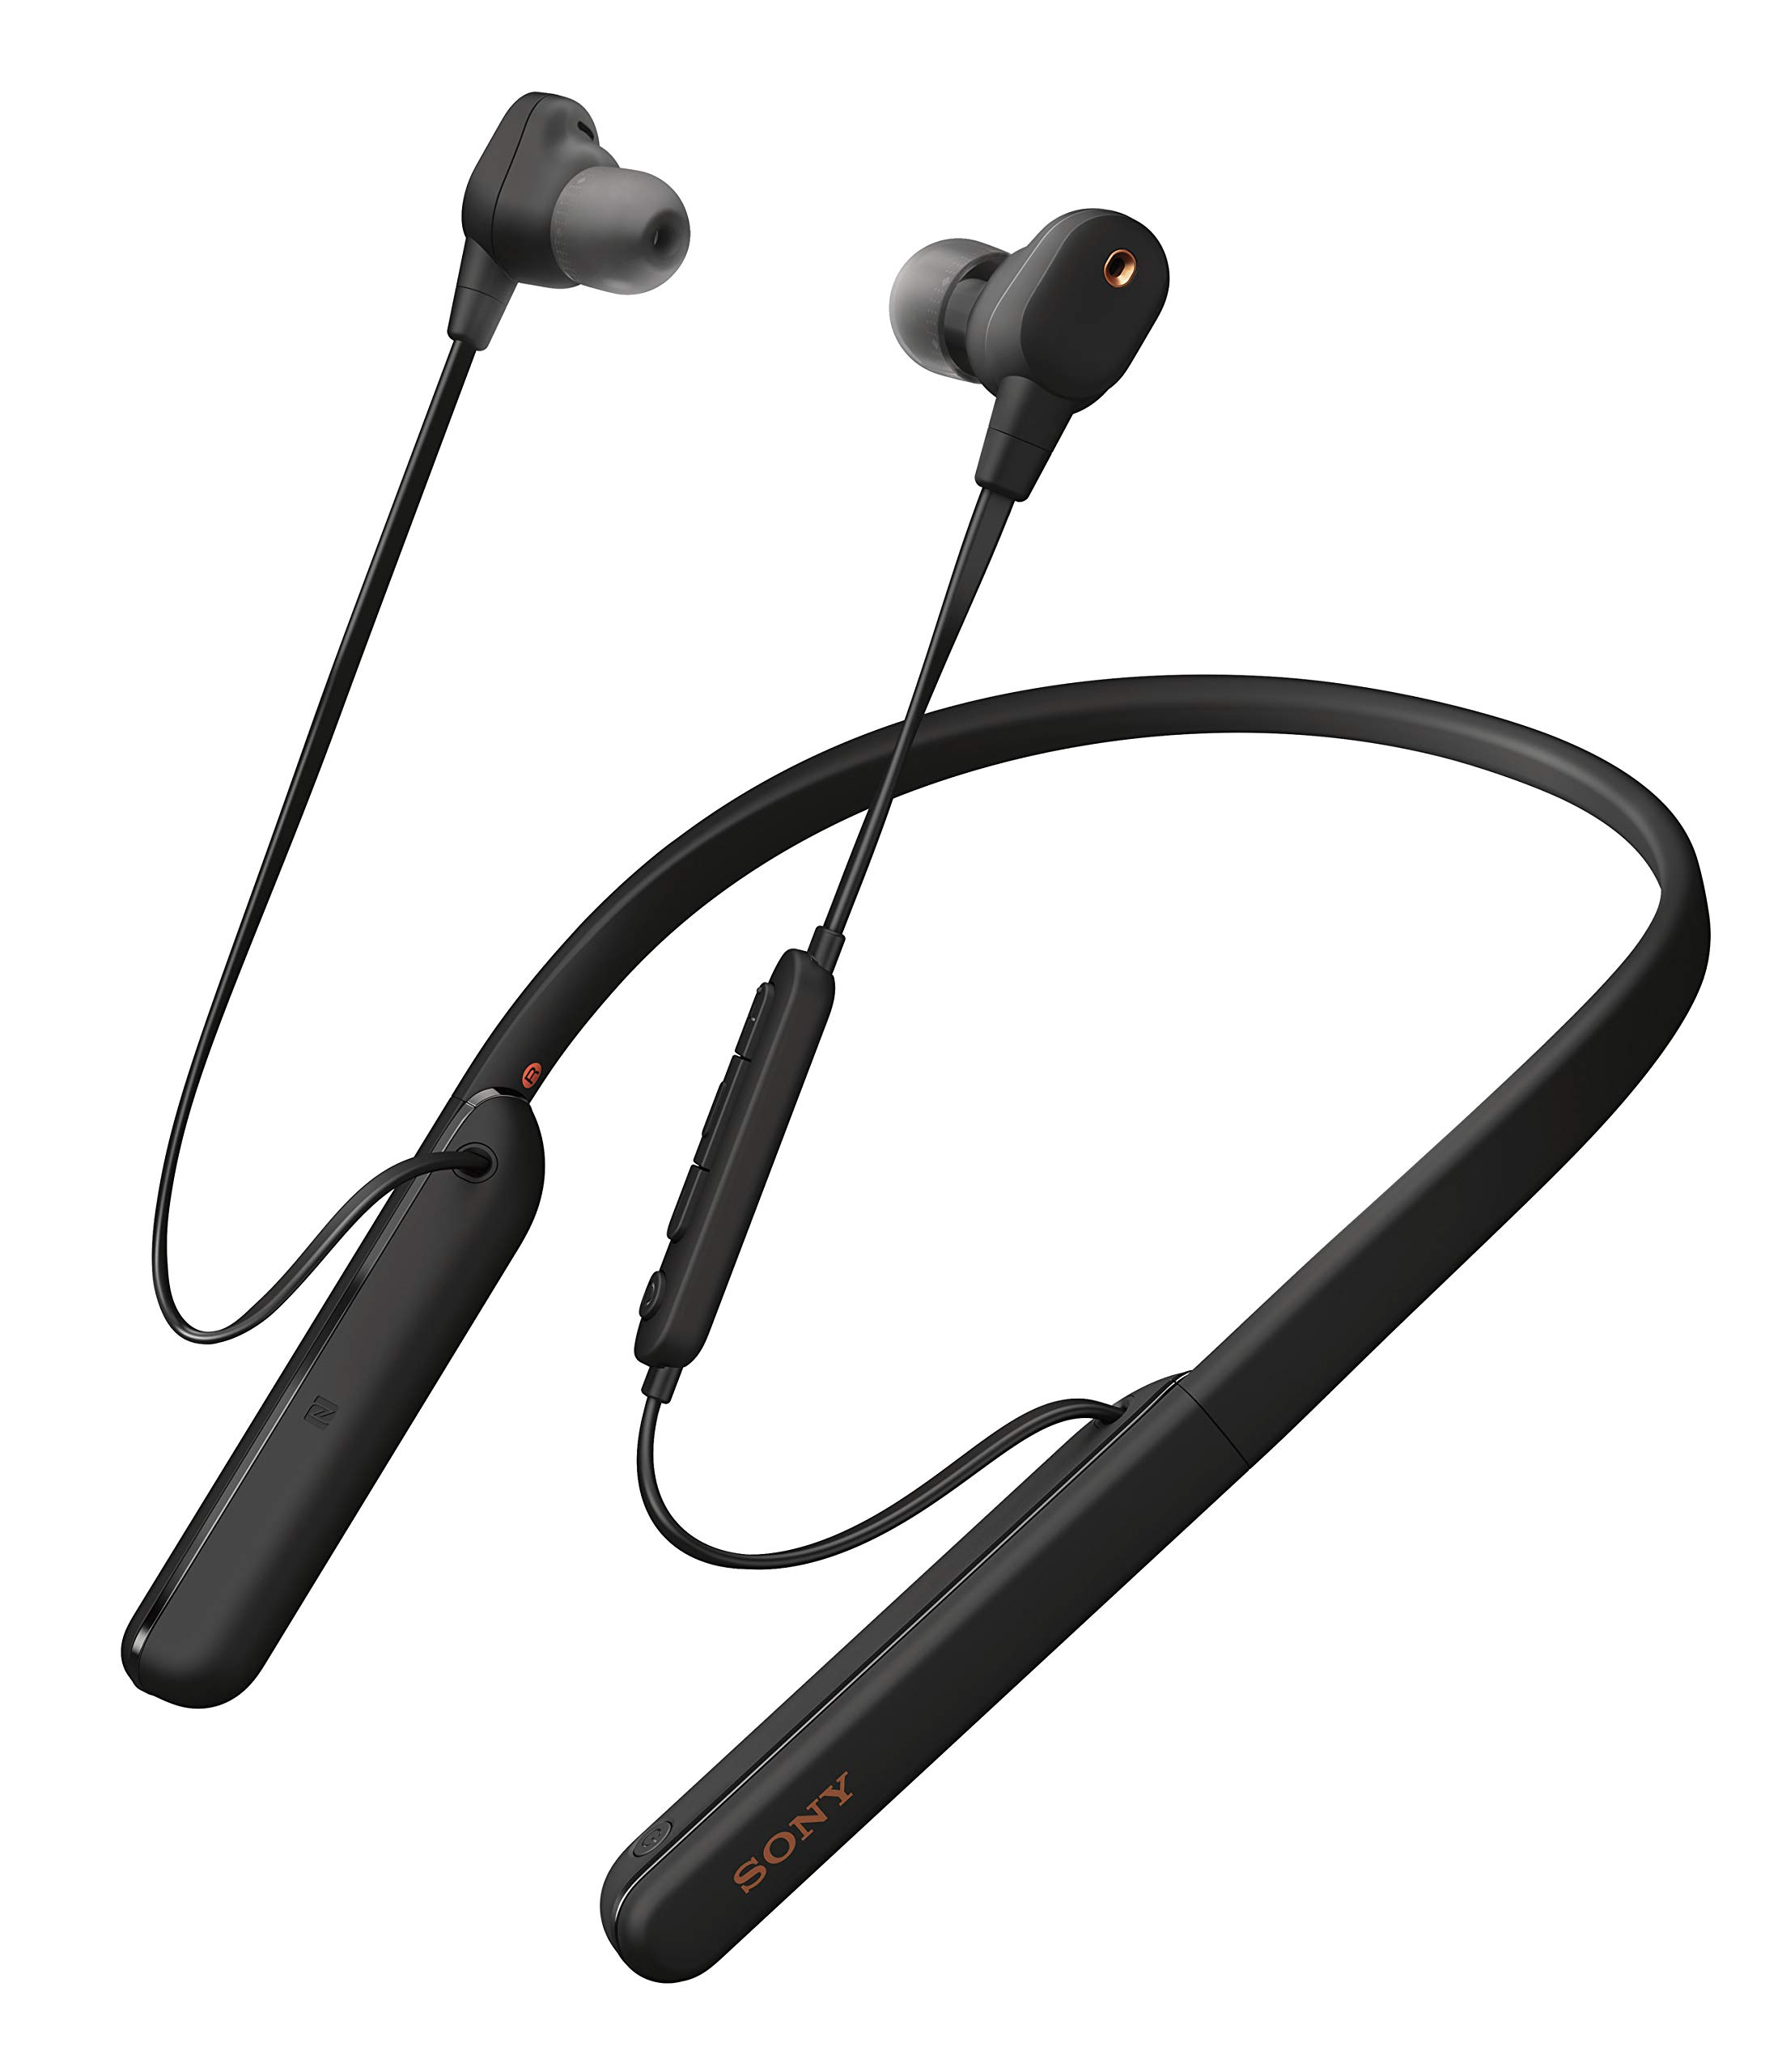 Amazon Com Sony Wi 1000xm2 Industry Leading Noise Canceling Wireless Behind Neck In Ear Headset Headphones With Mic For Phone Call With Alexa Voice Control Black Electronics